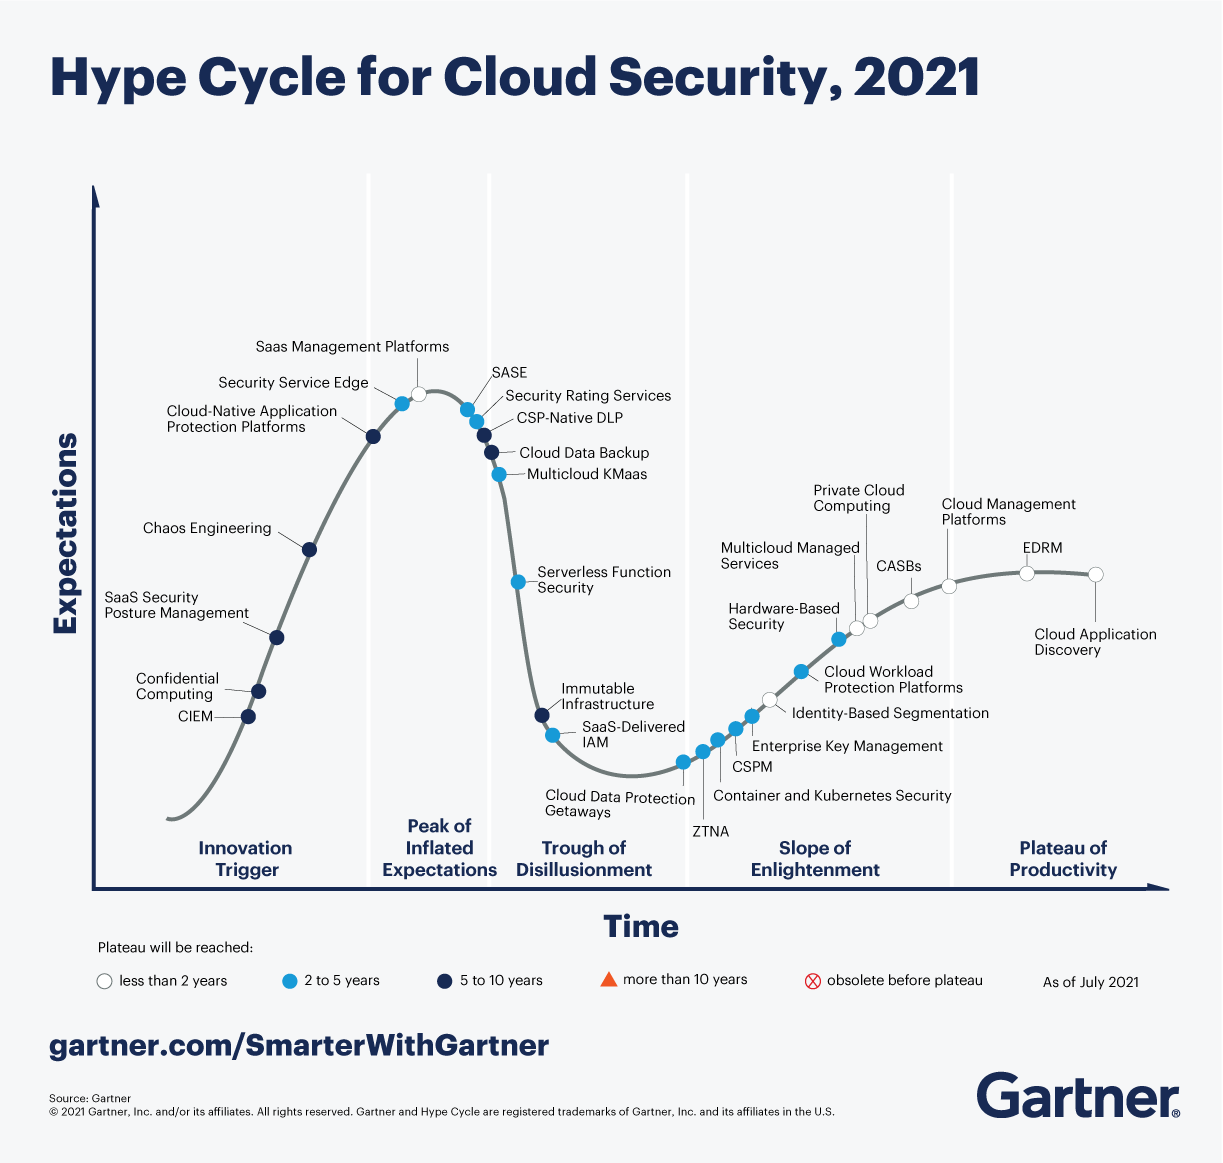 Hype Cycle for Cloud Security, 2021